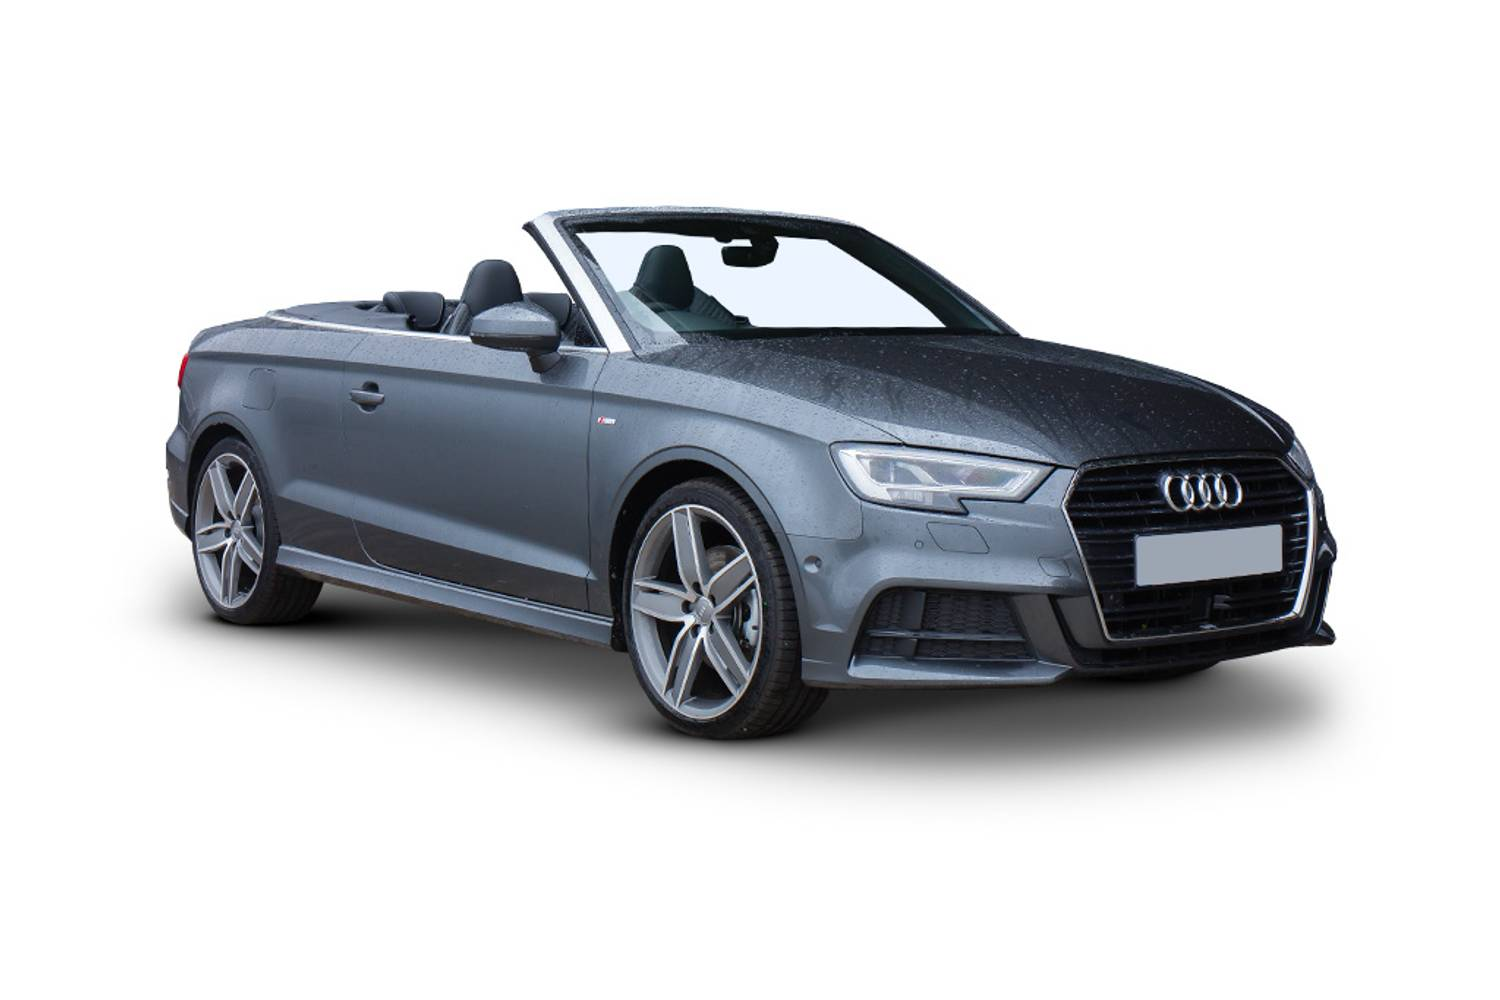 New Audi A3 Cabriolet 40 Tfsi Quattro S Line 2 Door S Tronic 2018 For Sale